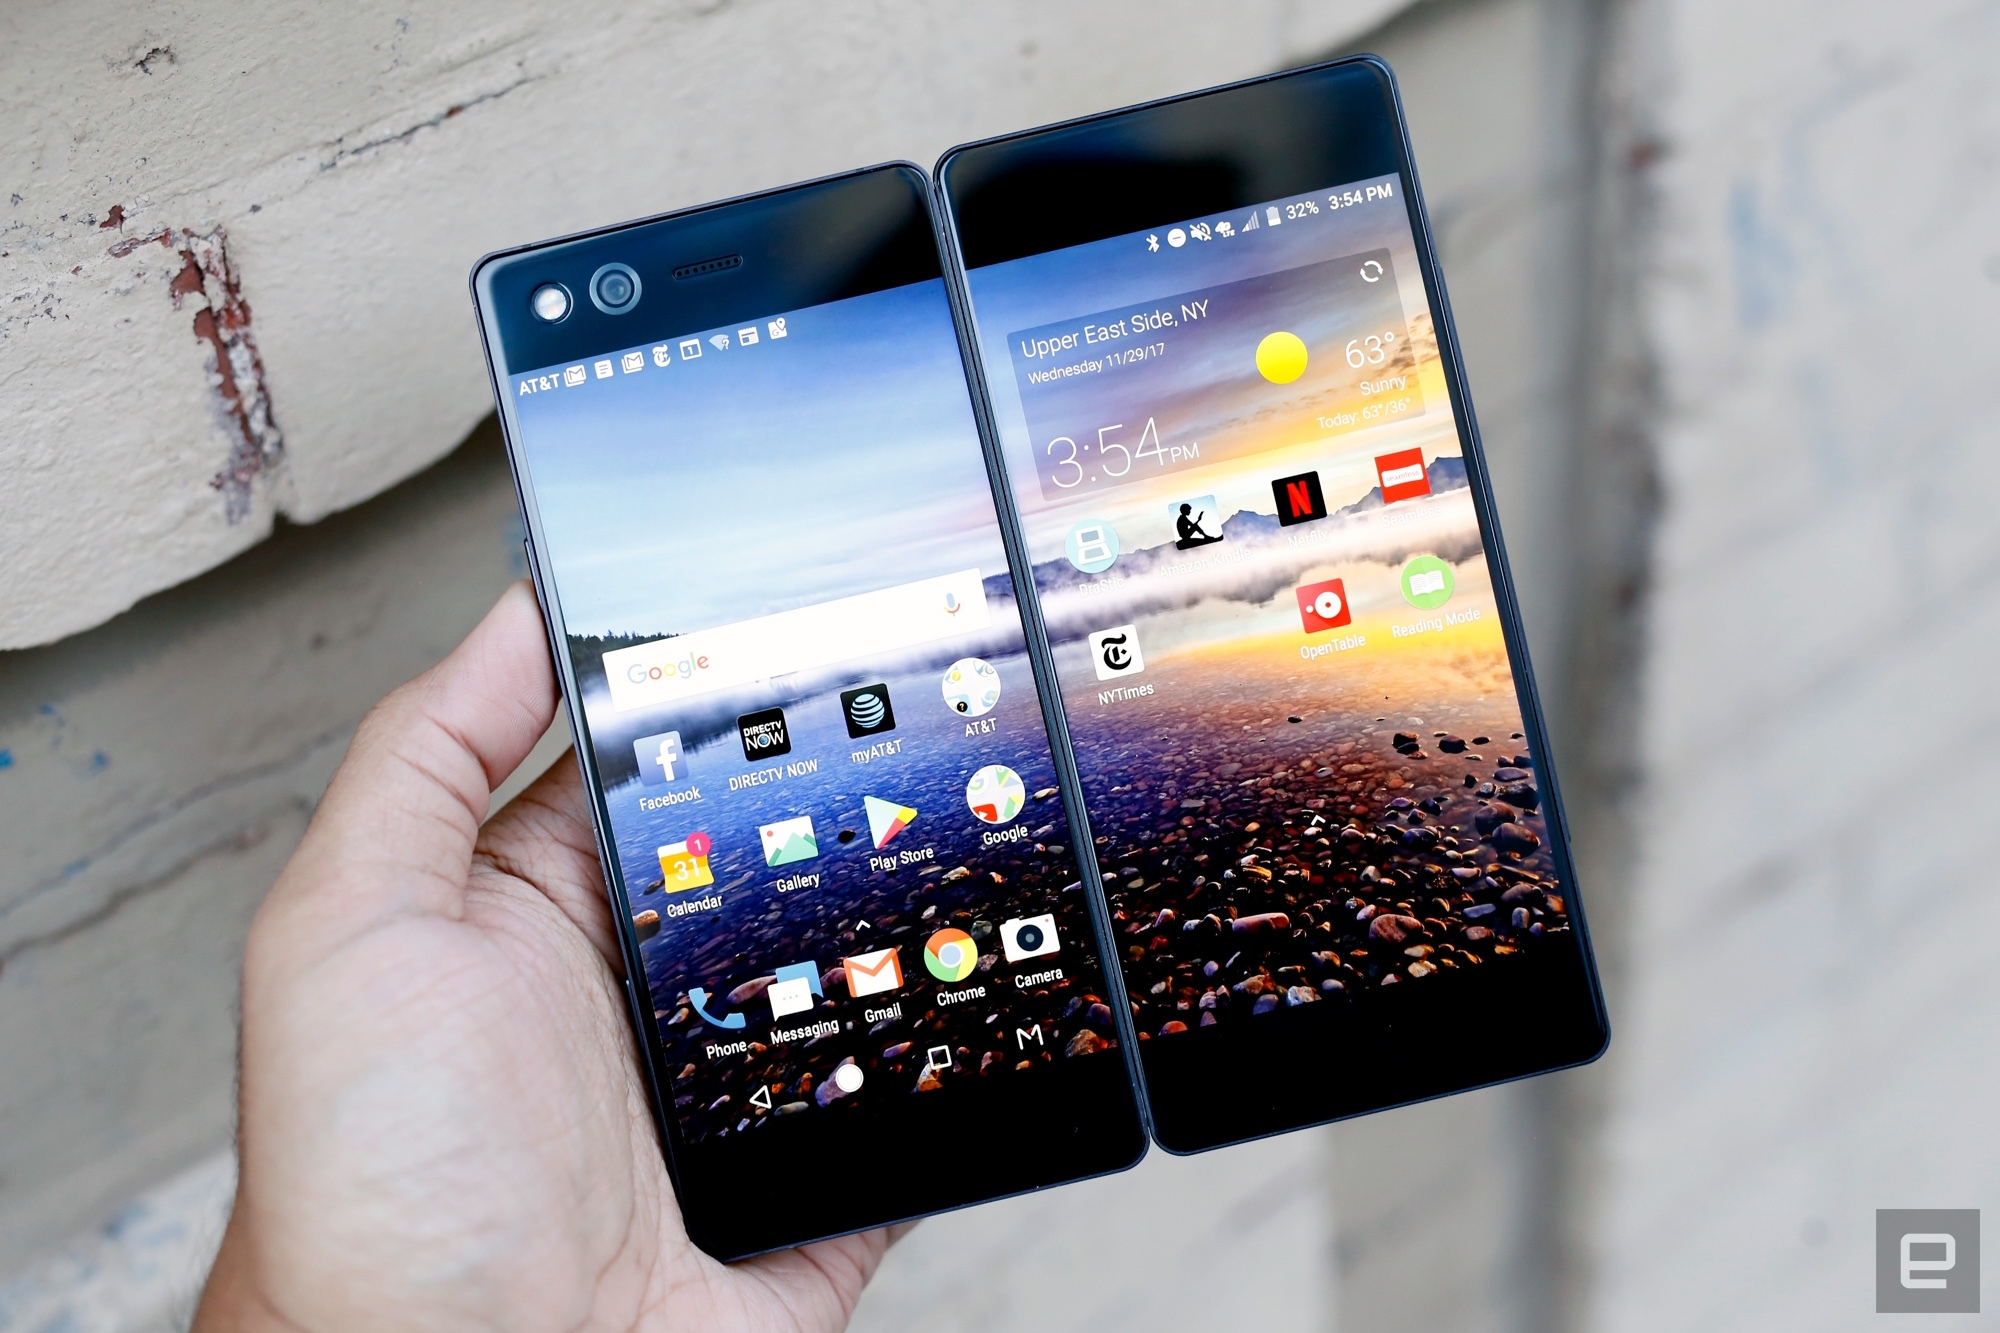 Zte shares its plans to keep experimenting with mobile phones biocorpaavc Choice Image